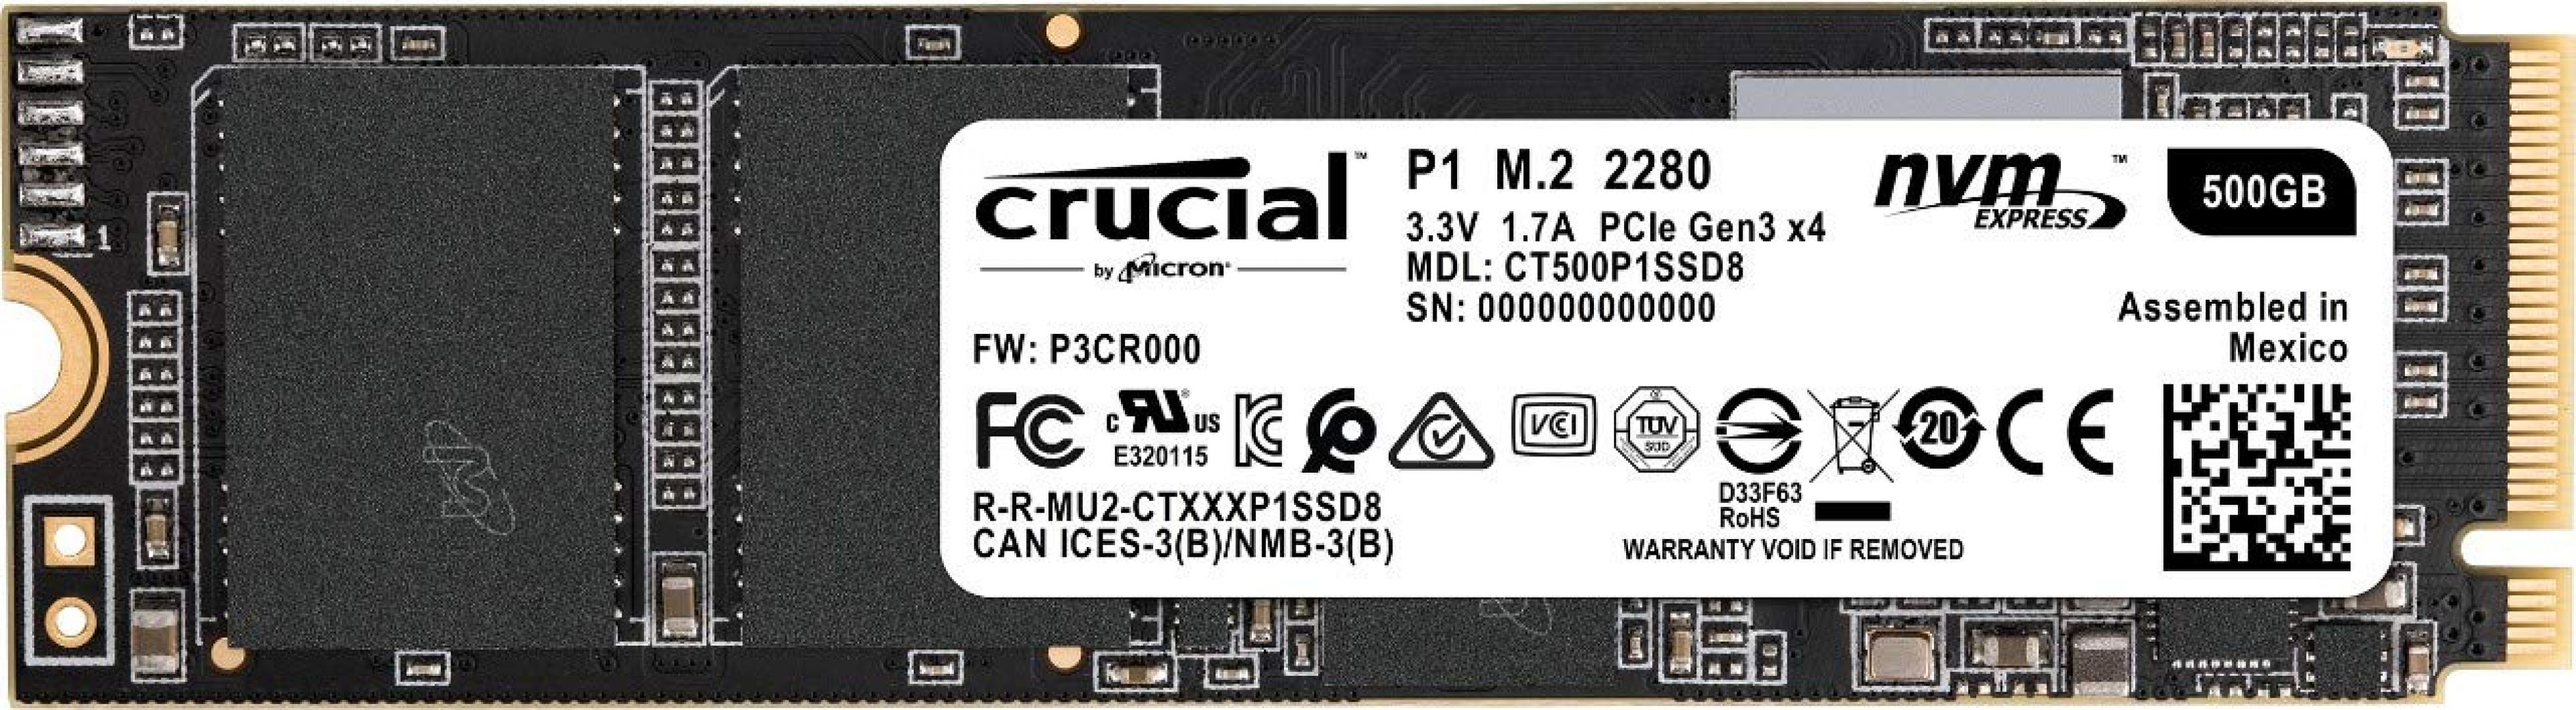 Crucial CT500P1SSD8 product image.